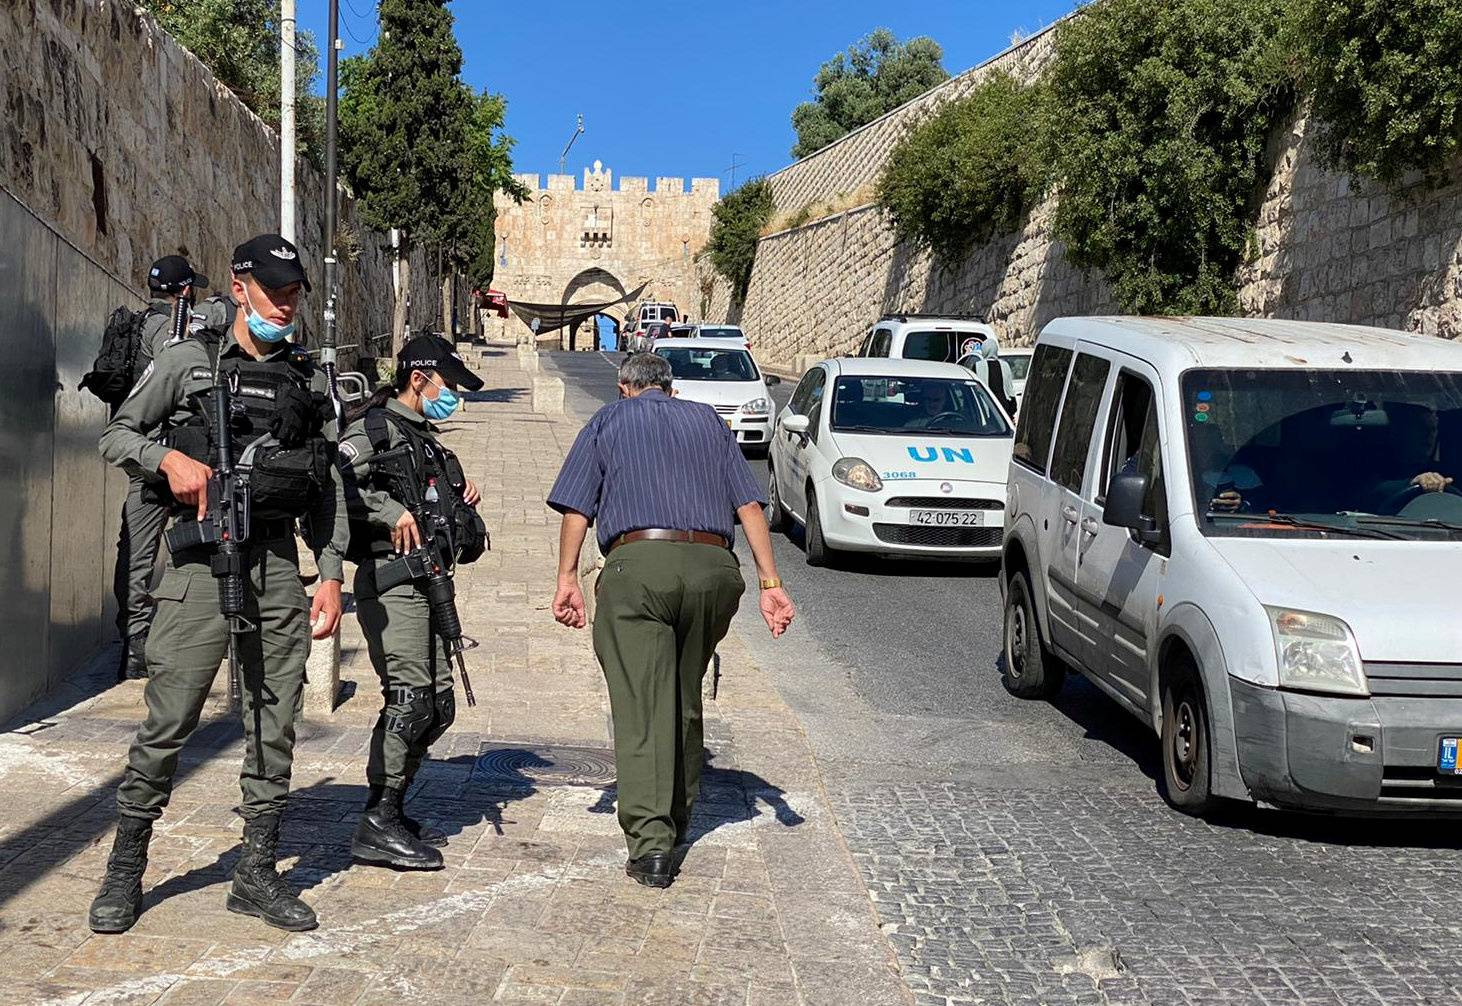 Israeli border police secure the area outside Jerusalem's Old City where officers fatally shot a man they believed was armed